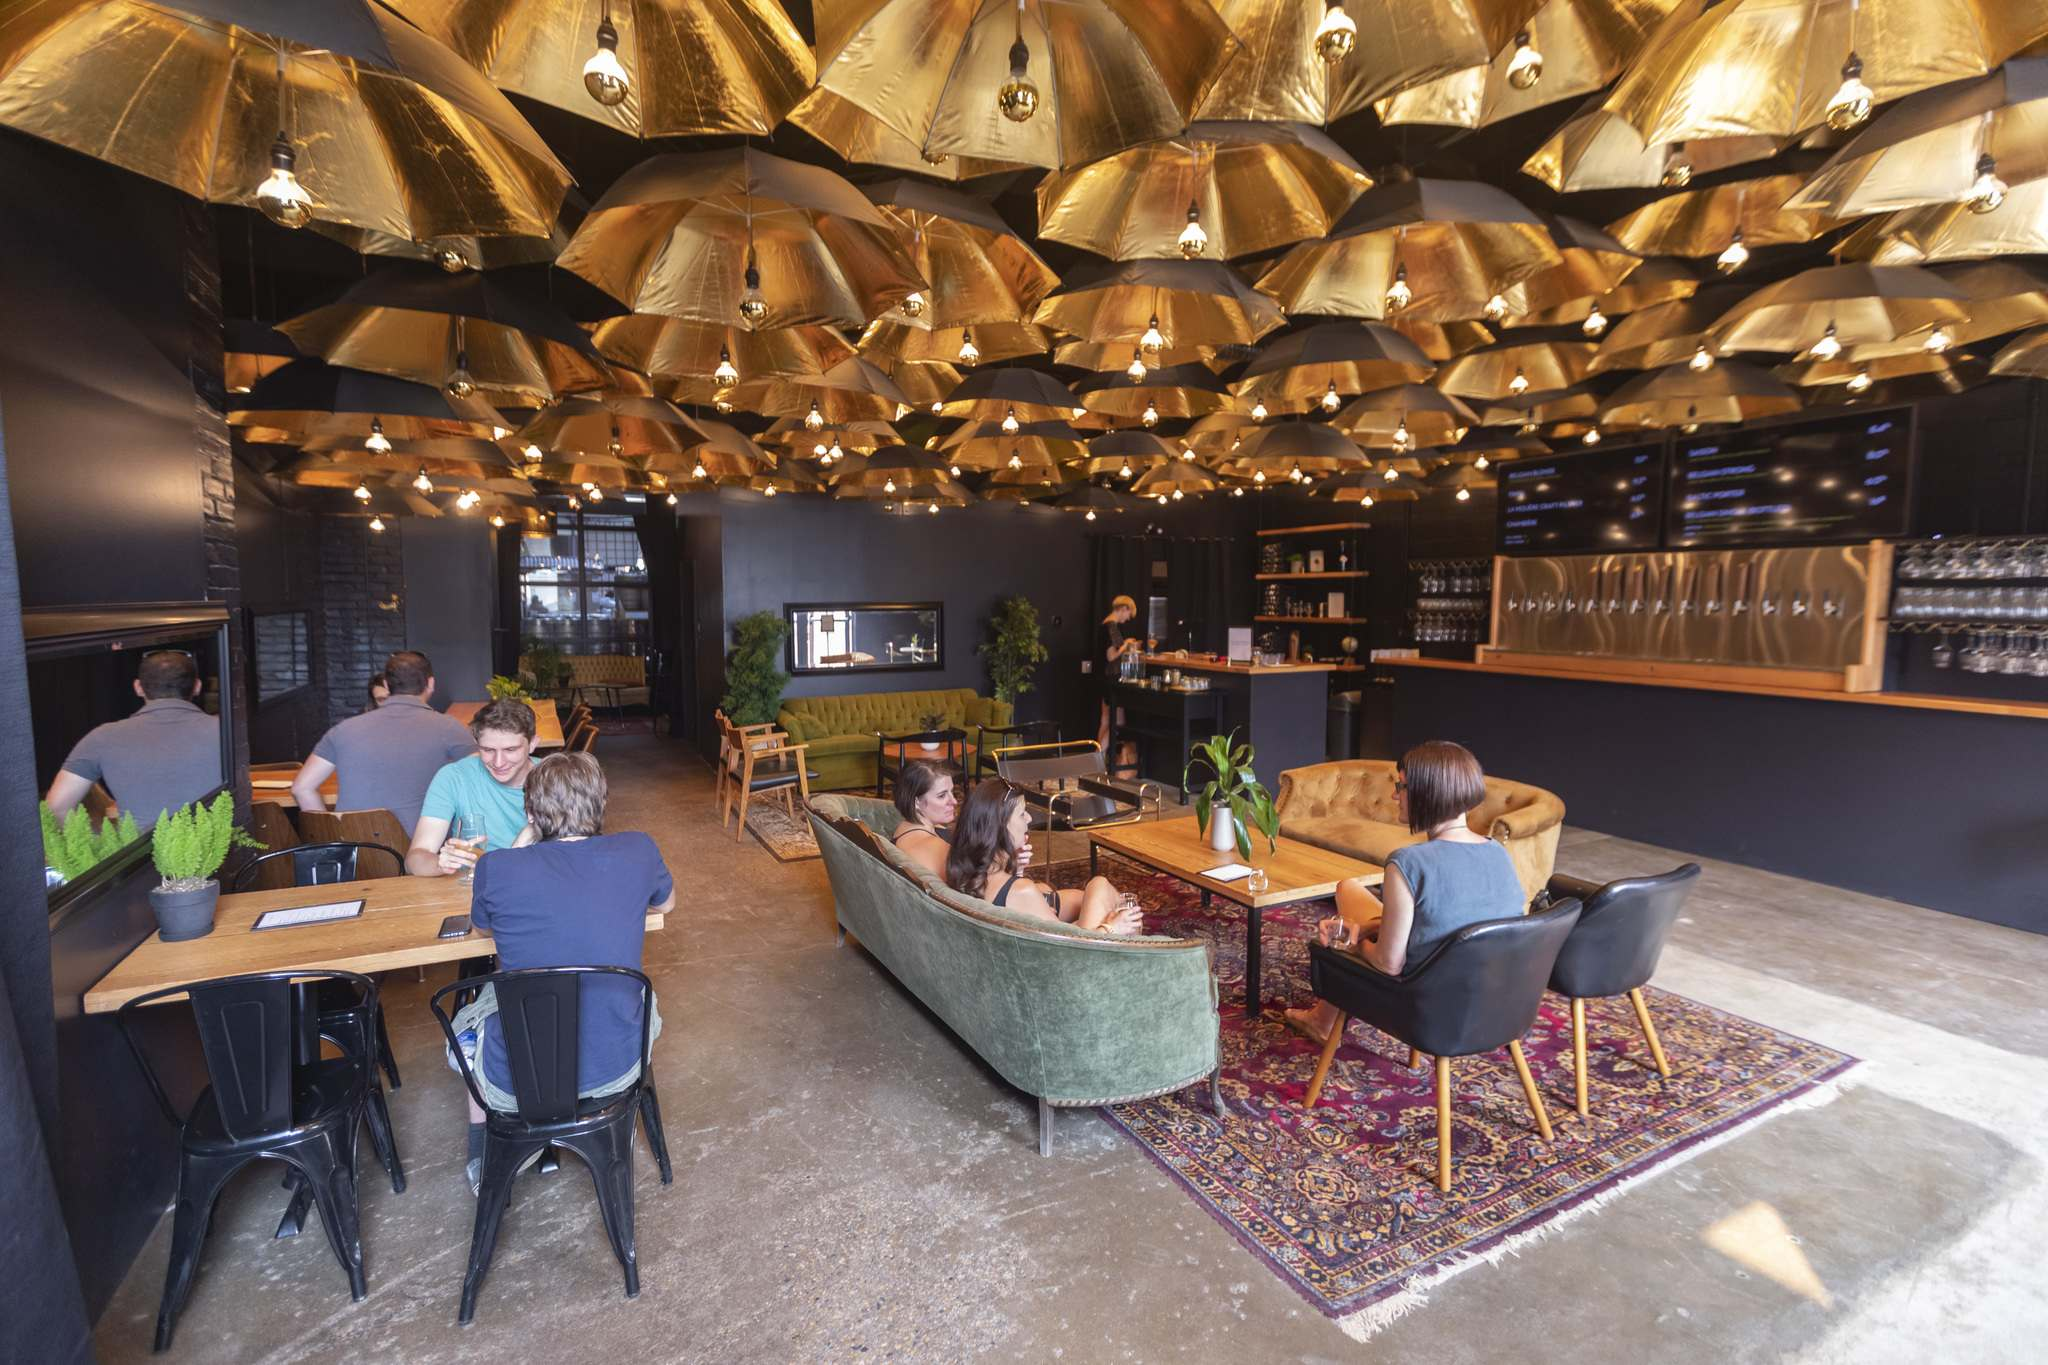 Oh, to be out and about again, beneath eminently Instagrammable ceilings like that of Nonsuch Brewing Co.</p>